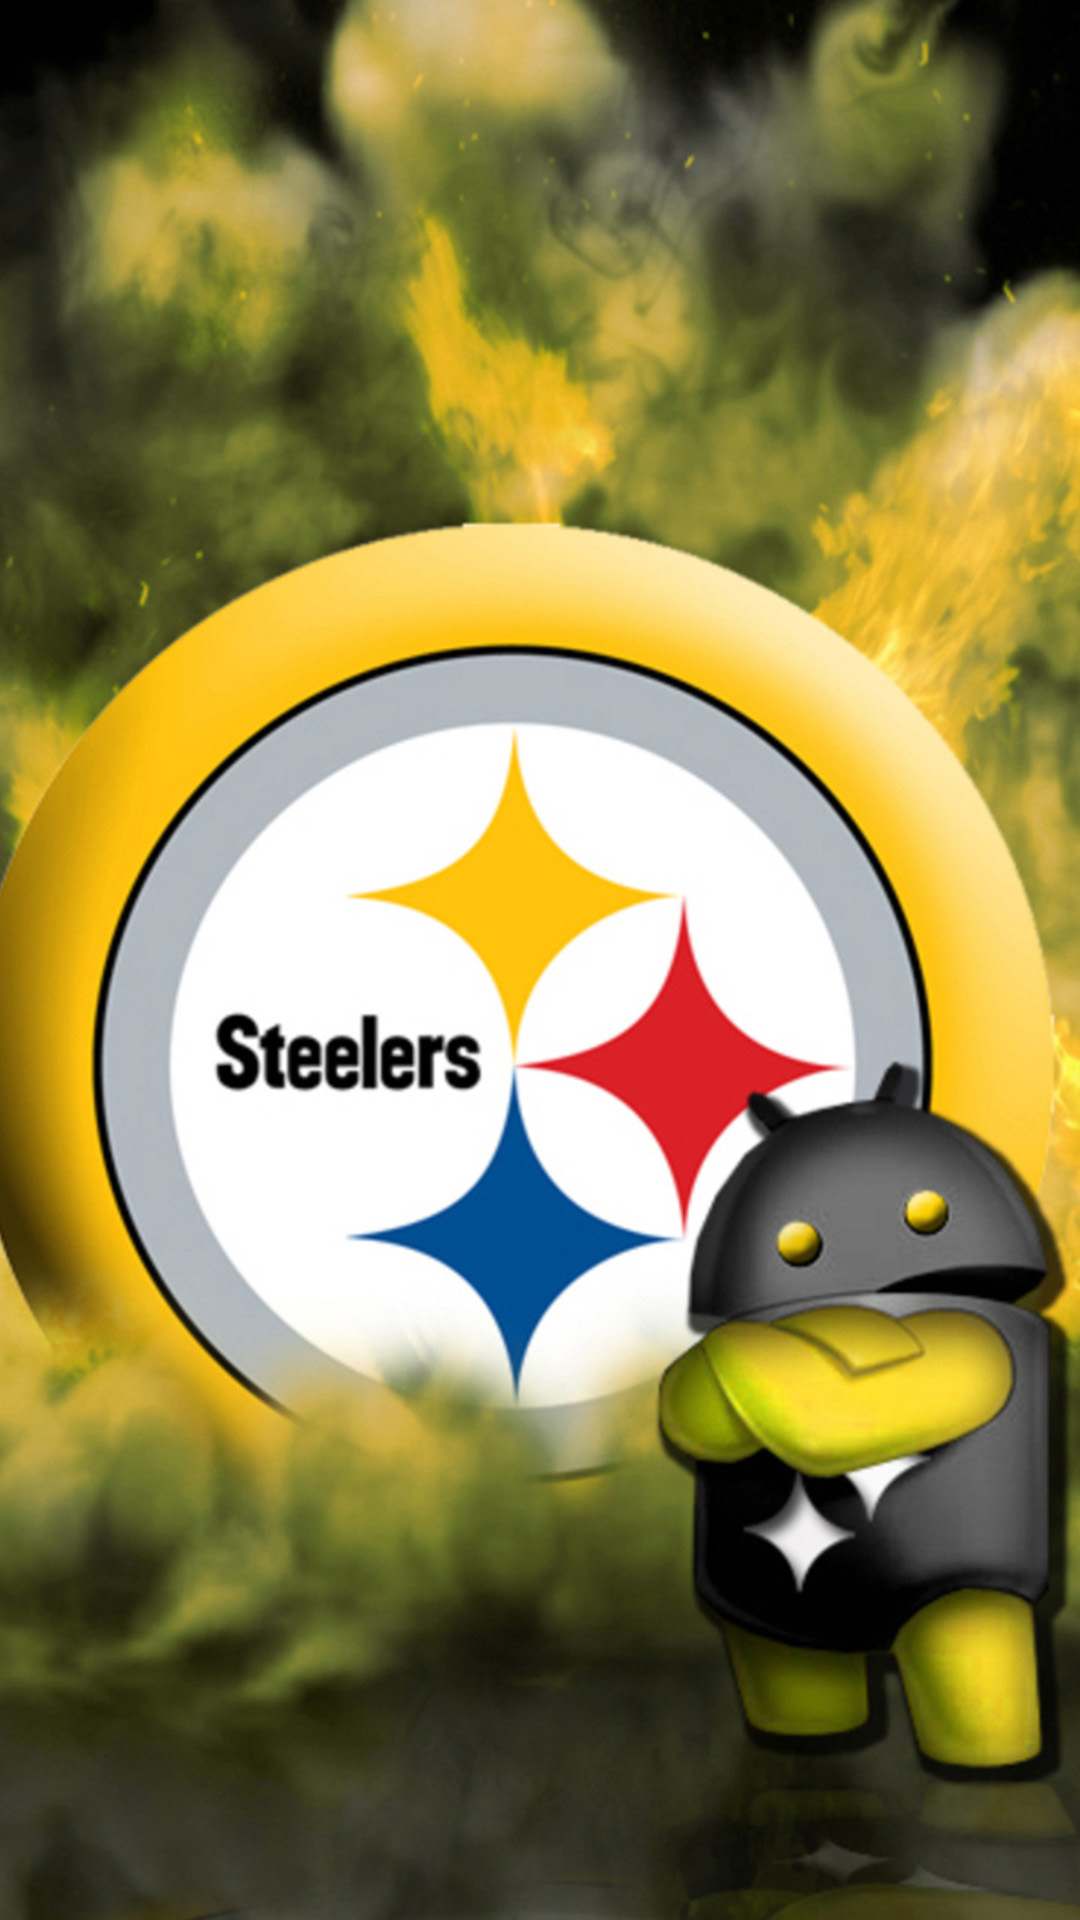 Android Steelers Galaxy S5 Wallpapers HD 1080x1920